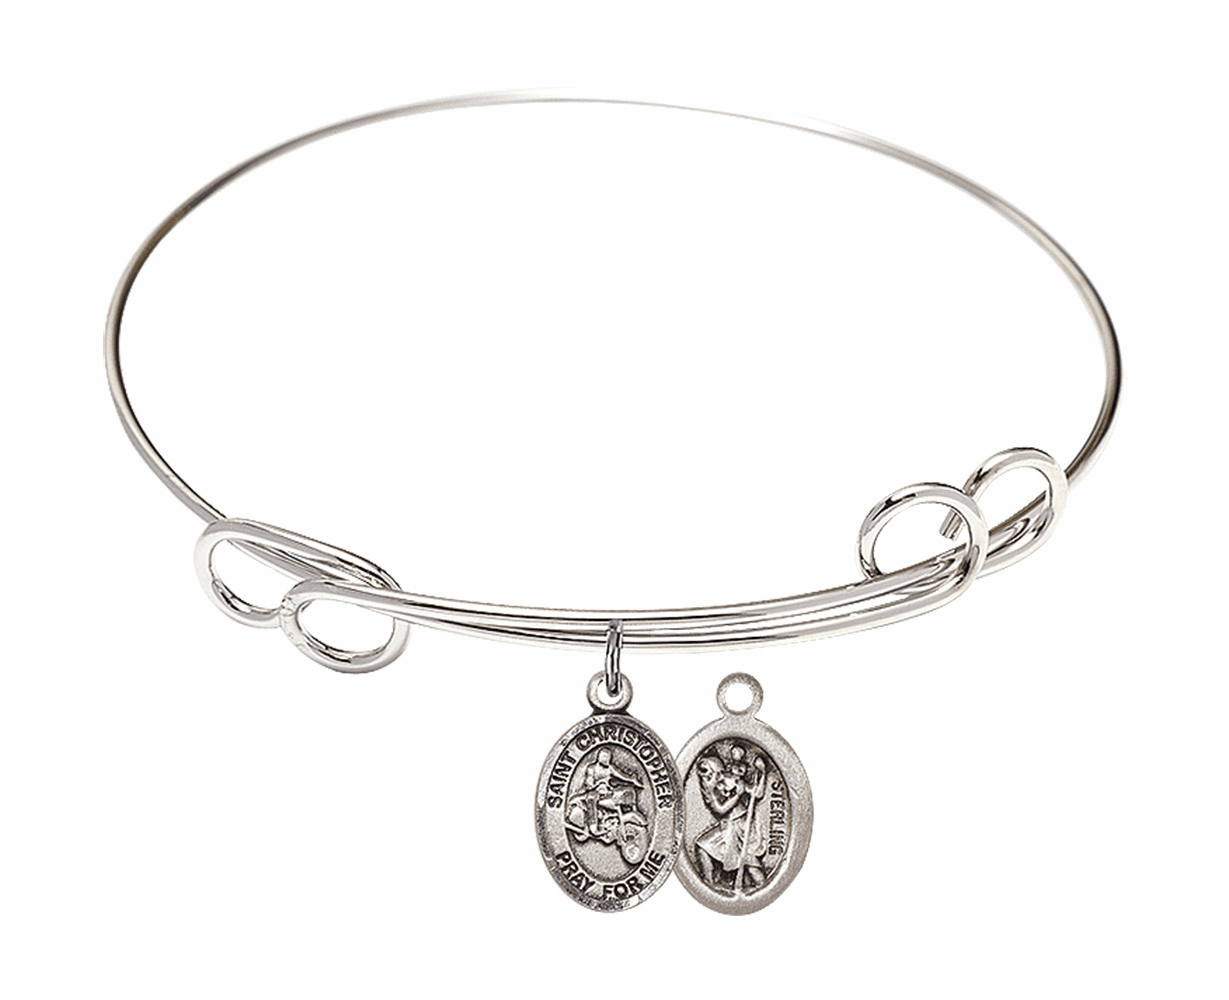 Round Loop St Christopher Motorcycle Riding Bangle Charm Bracelet by Bliss